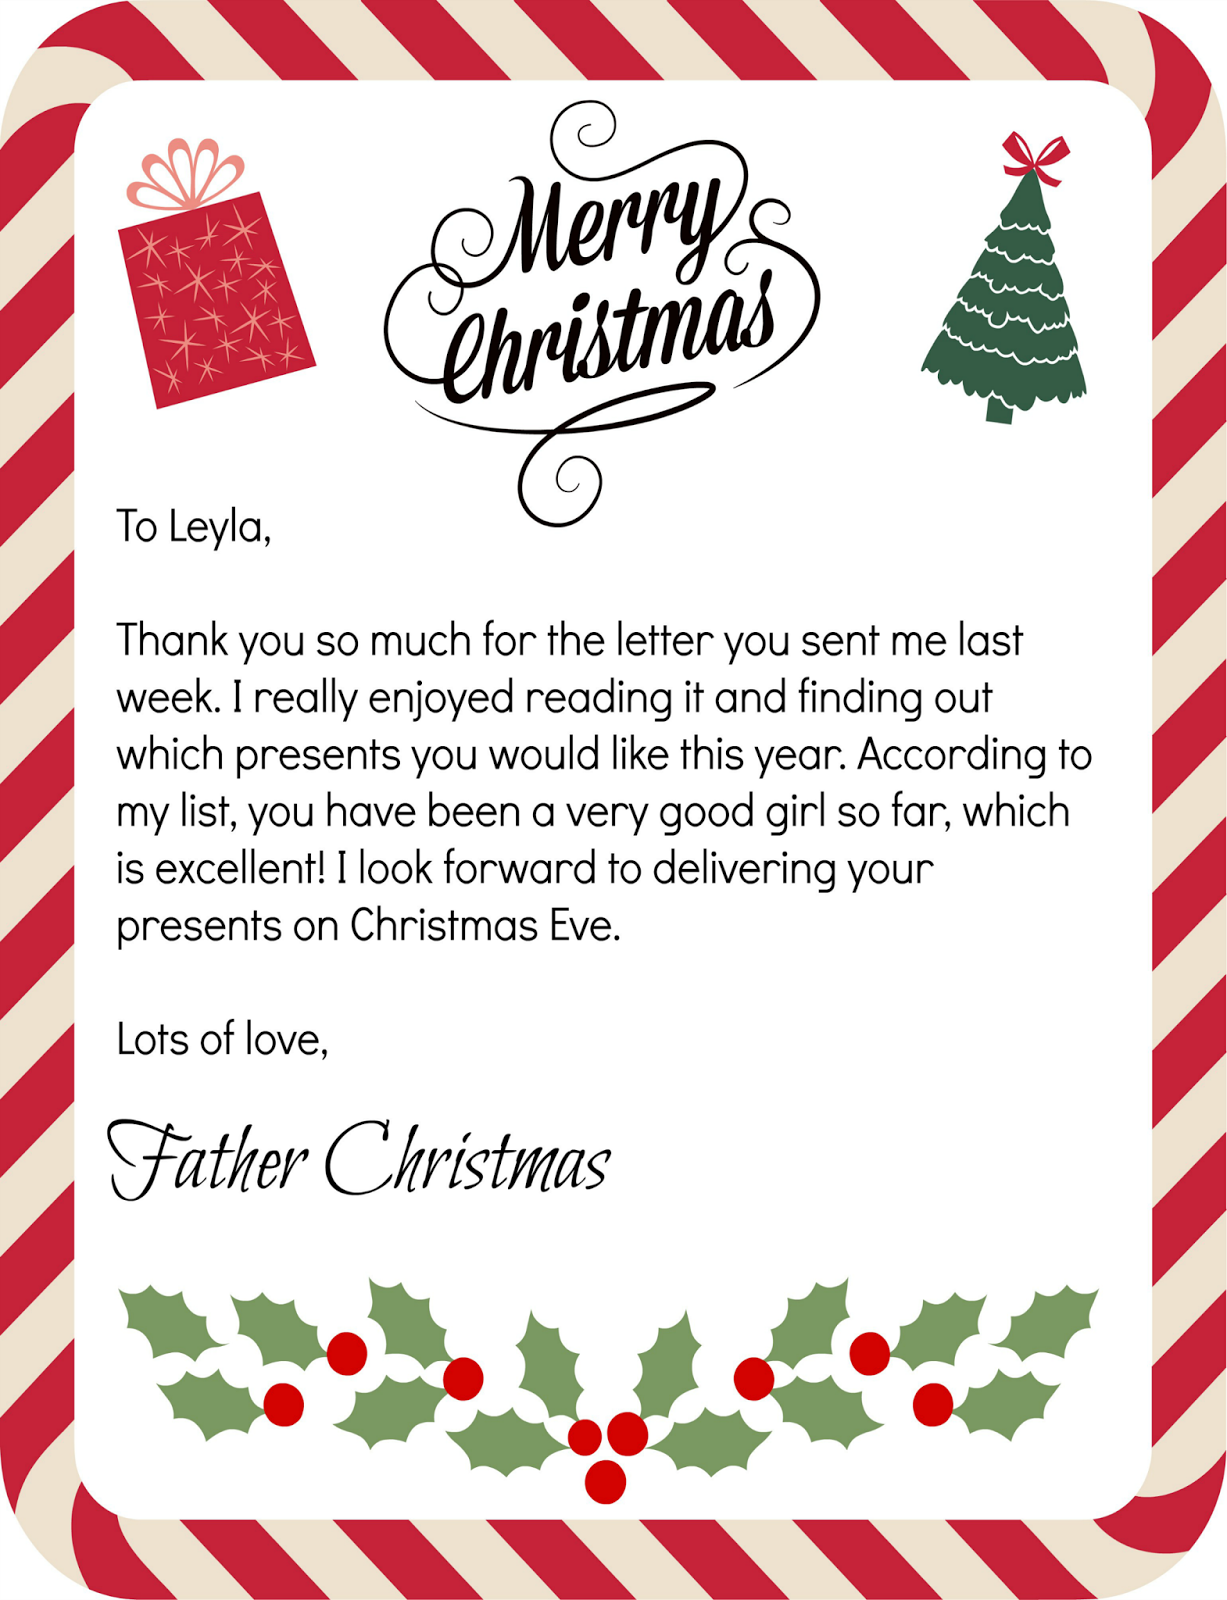 Mammy made 24 days to christmas countdown father christmas i decided to write a letter back to each of them from father christmas telling them that they have been very good and that he is looking forward to spiritdancerdesigns Gallery